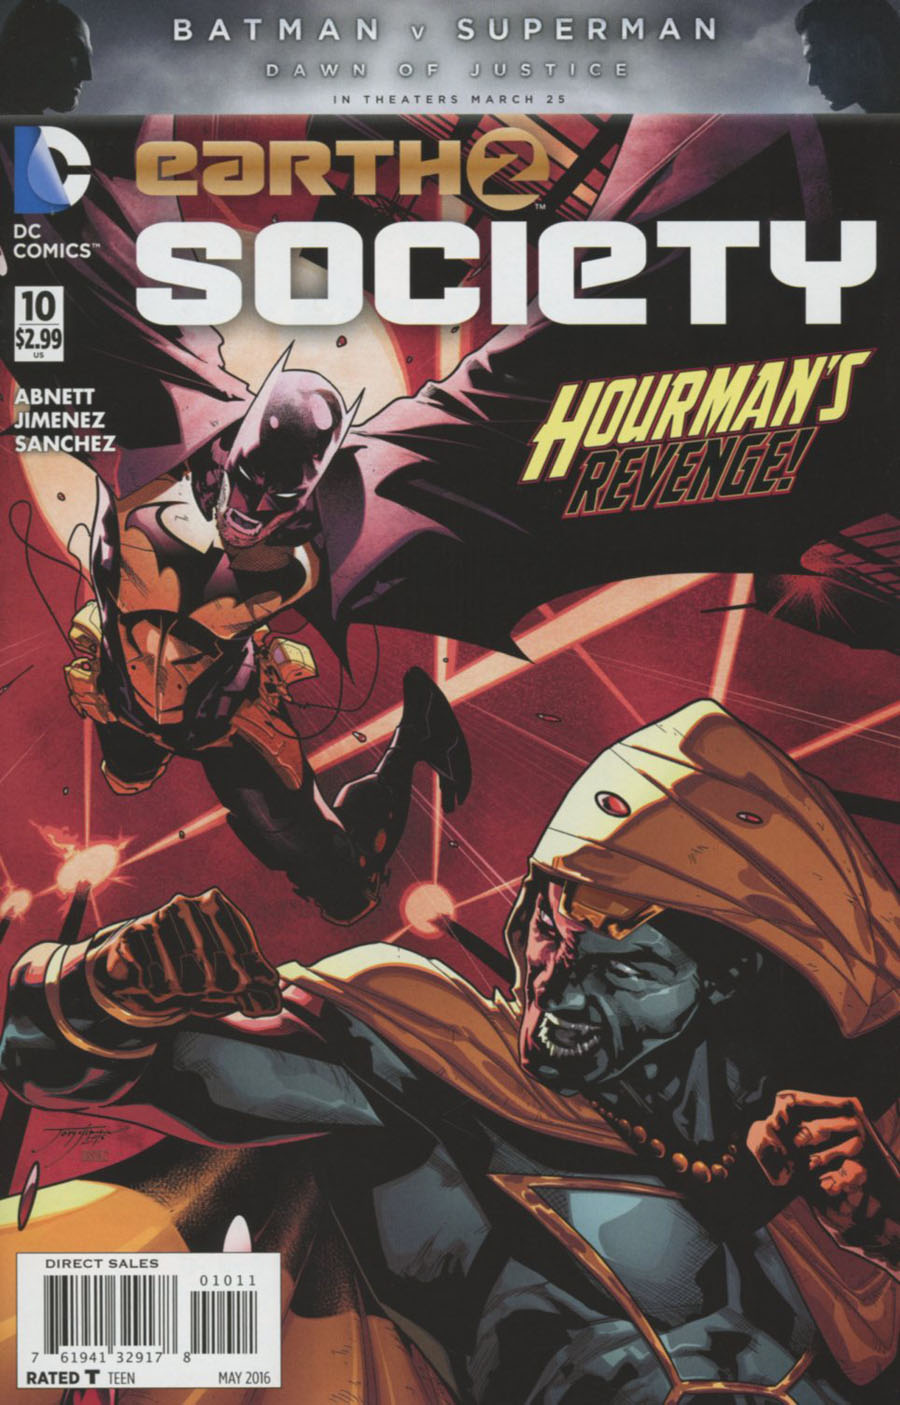 Earth 2: Society #10